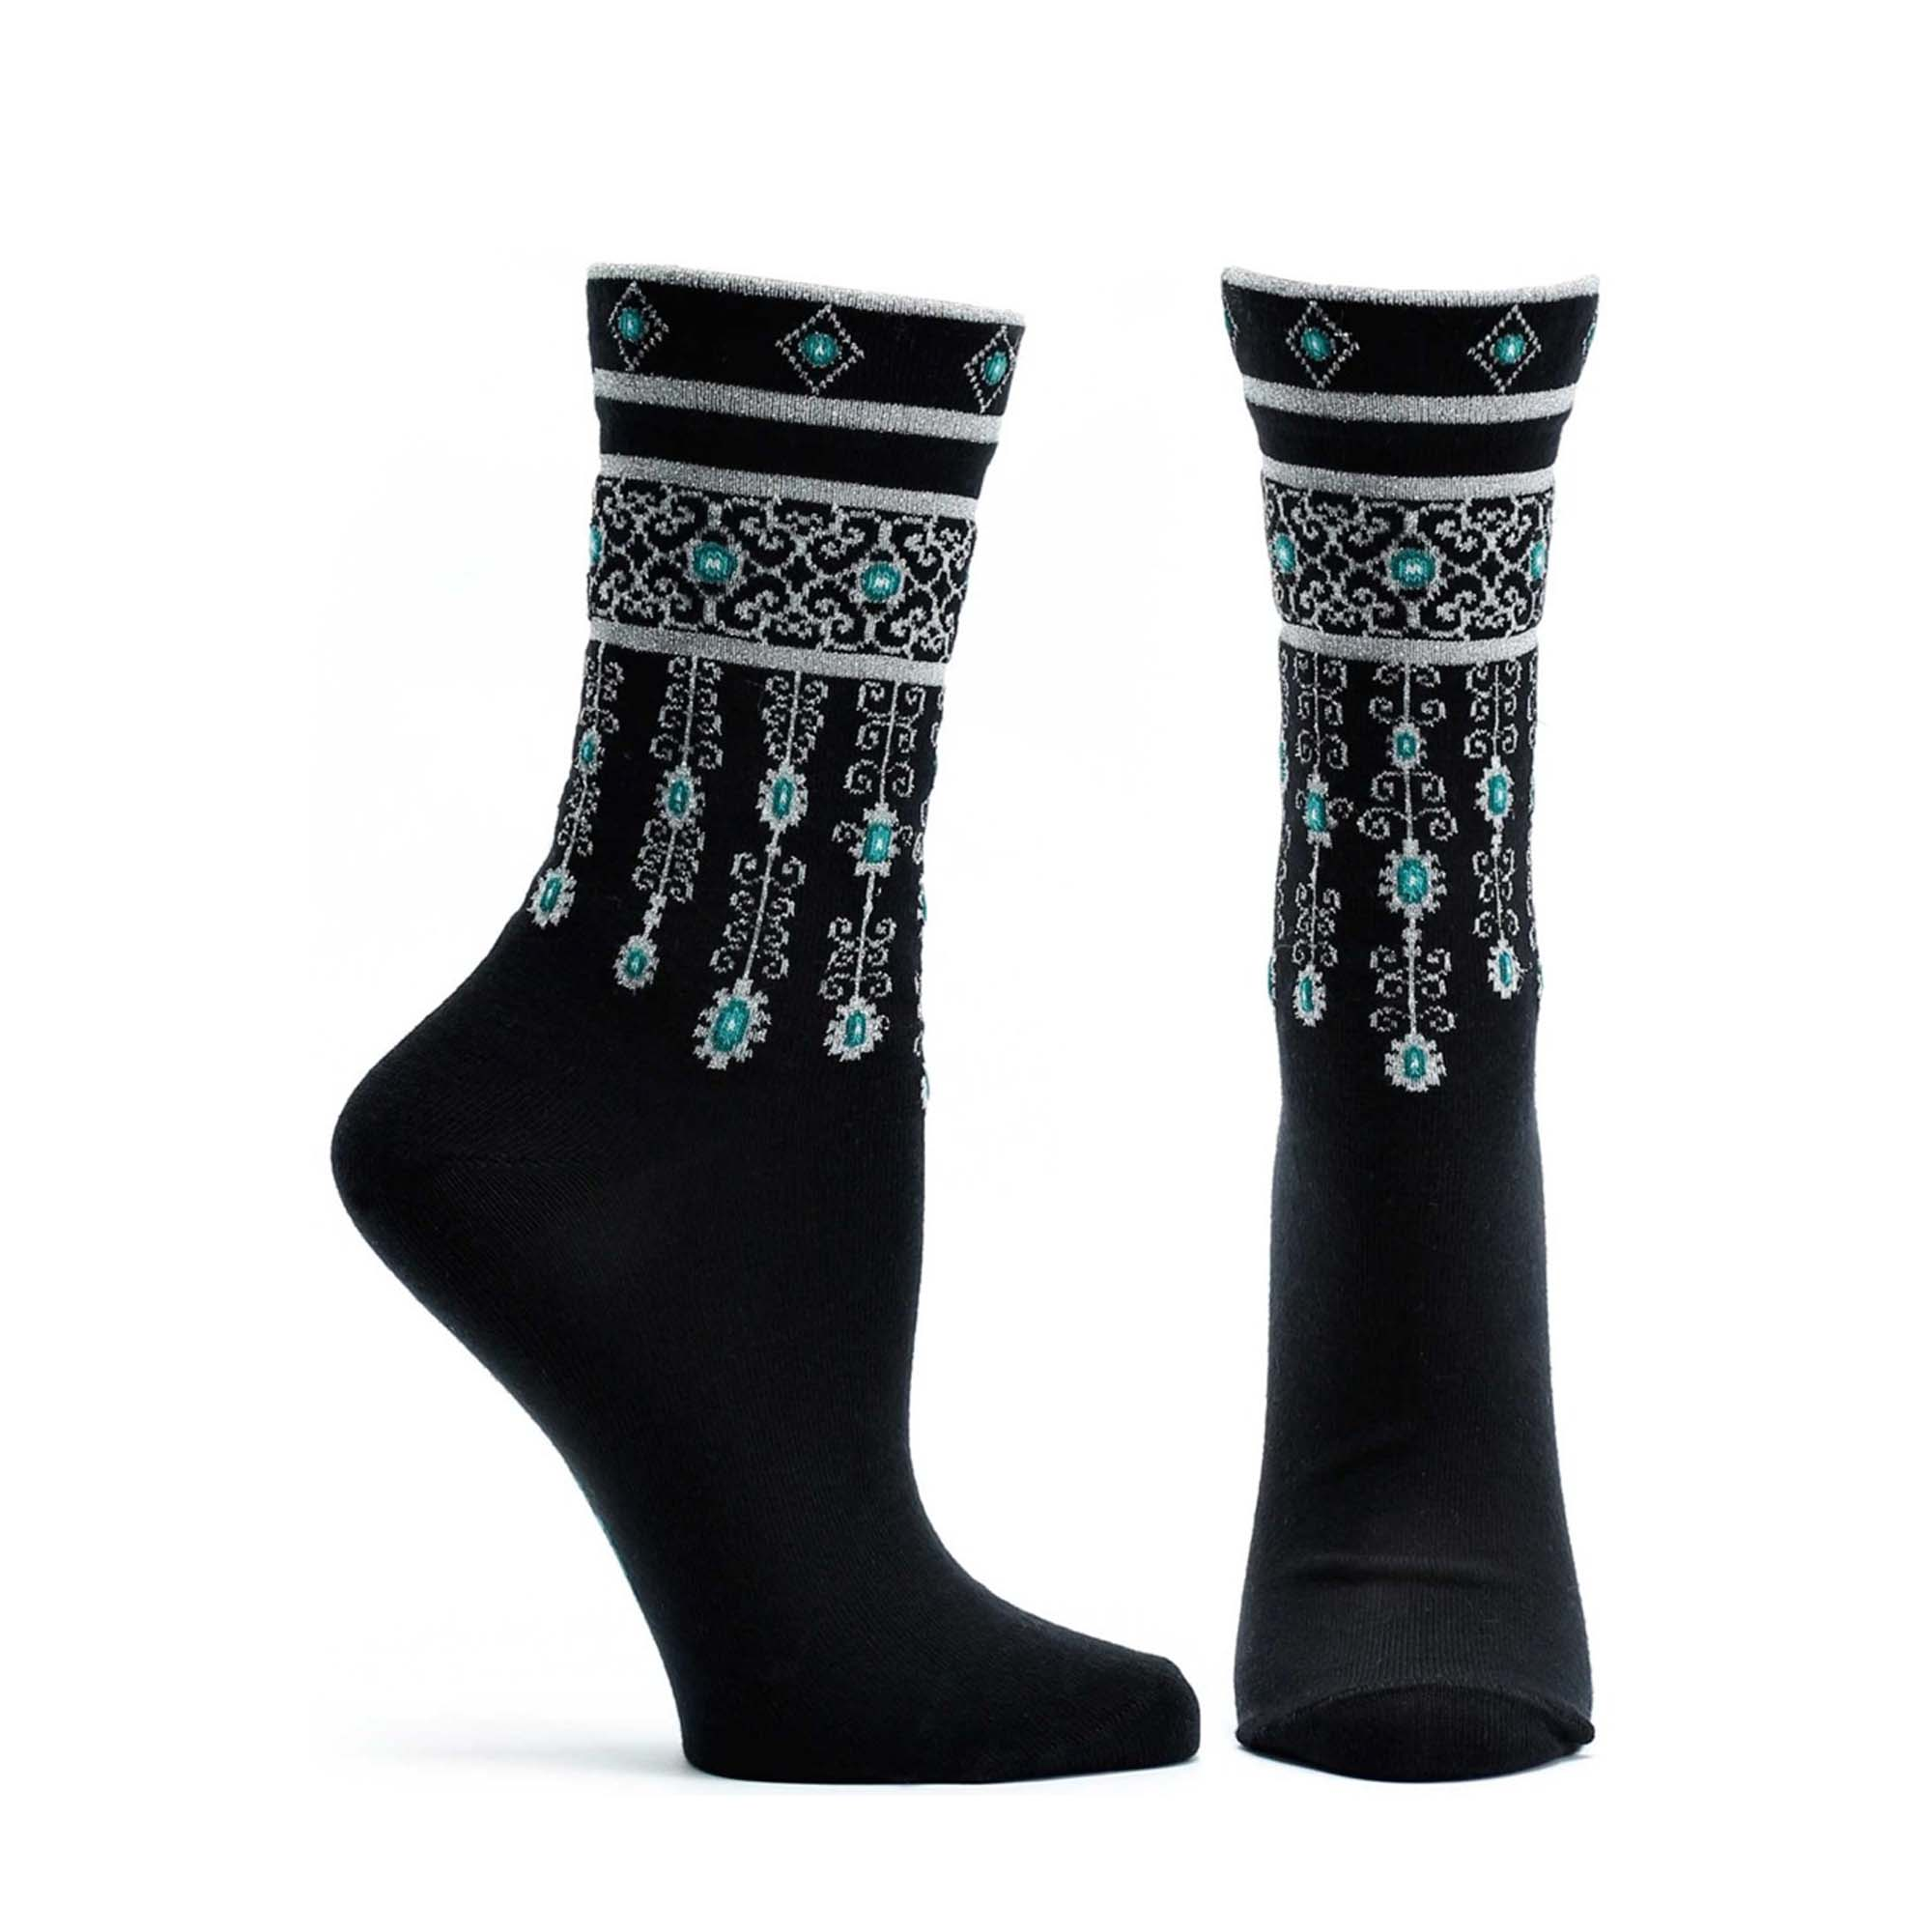 Bejeweled Cuffs Sock - Ozone Design Inc